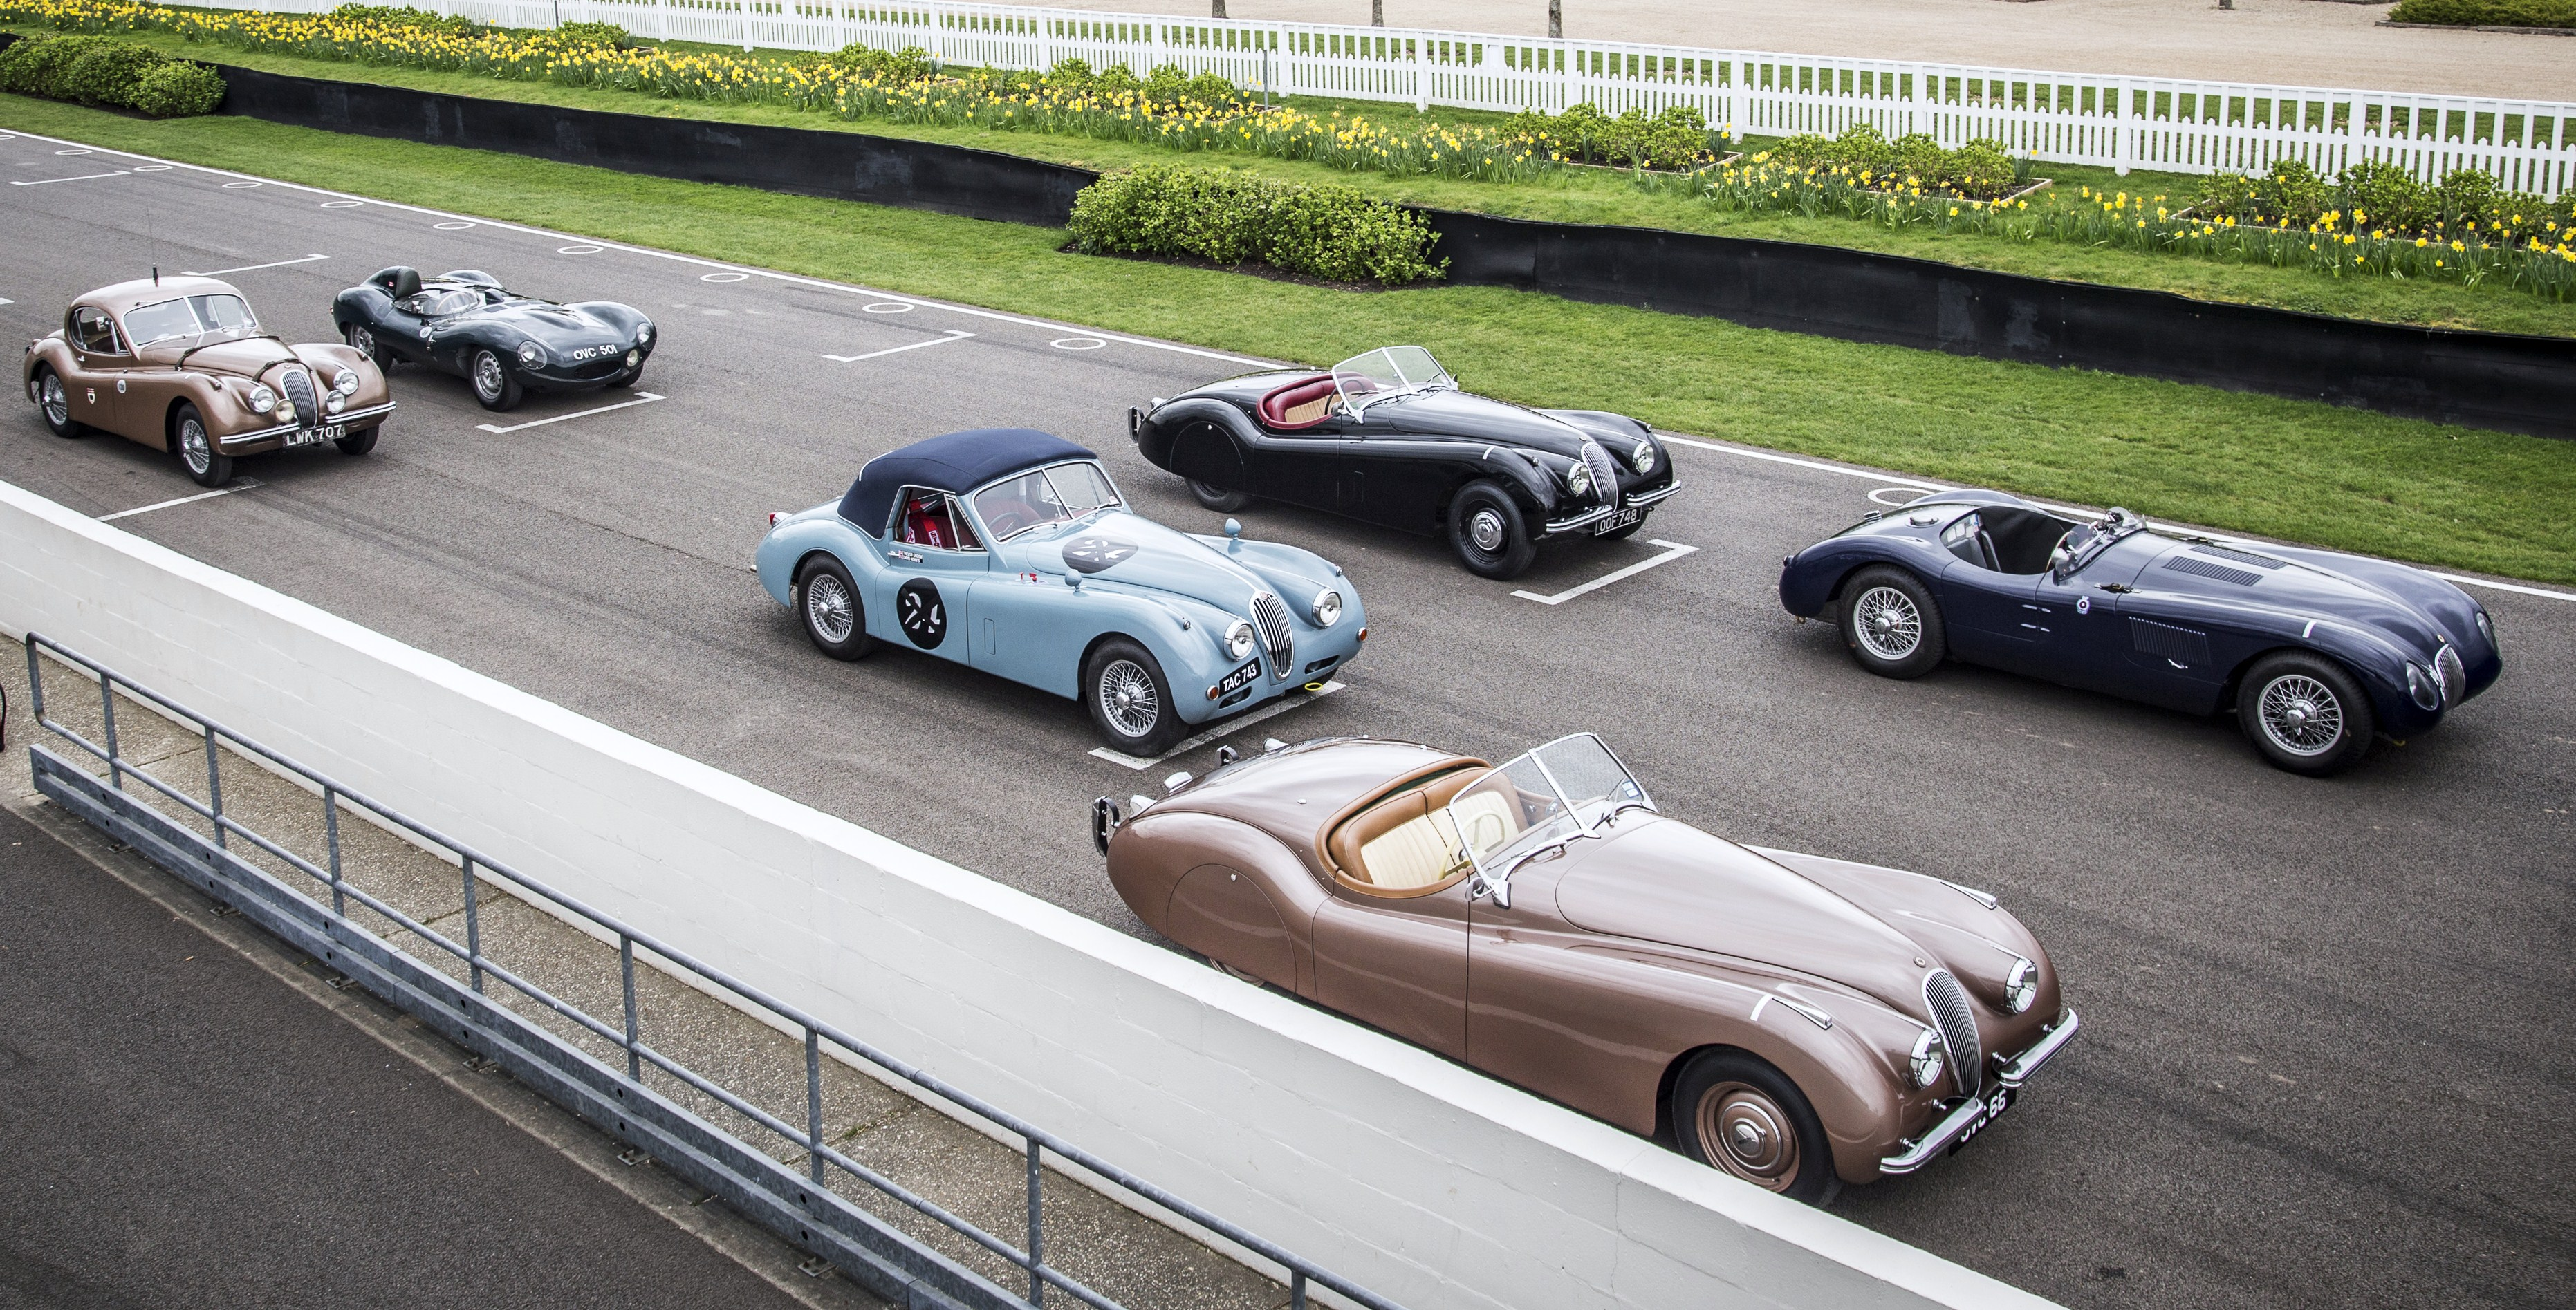 Famous Jaguar Sports Cars Racers Entered In Mille Miglia